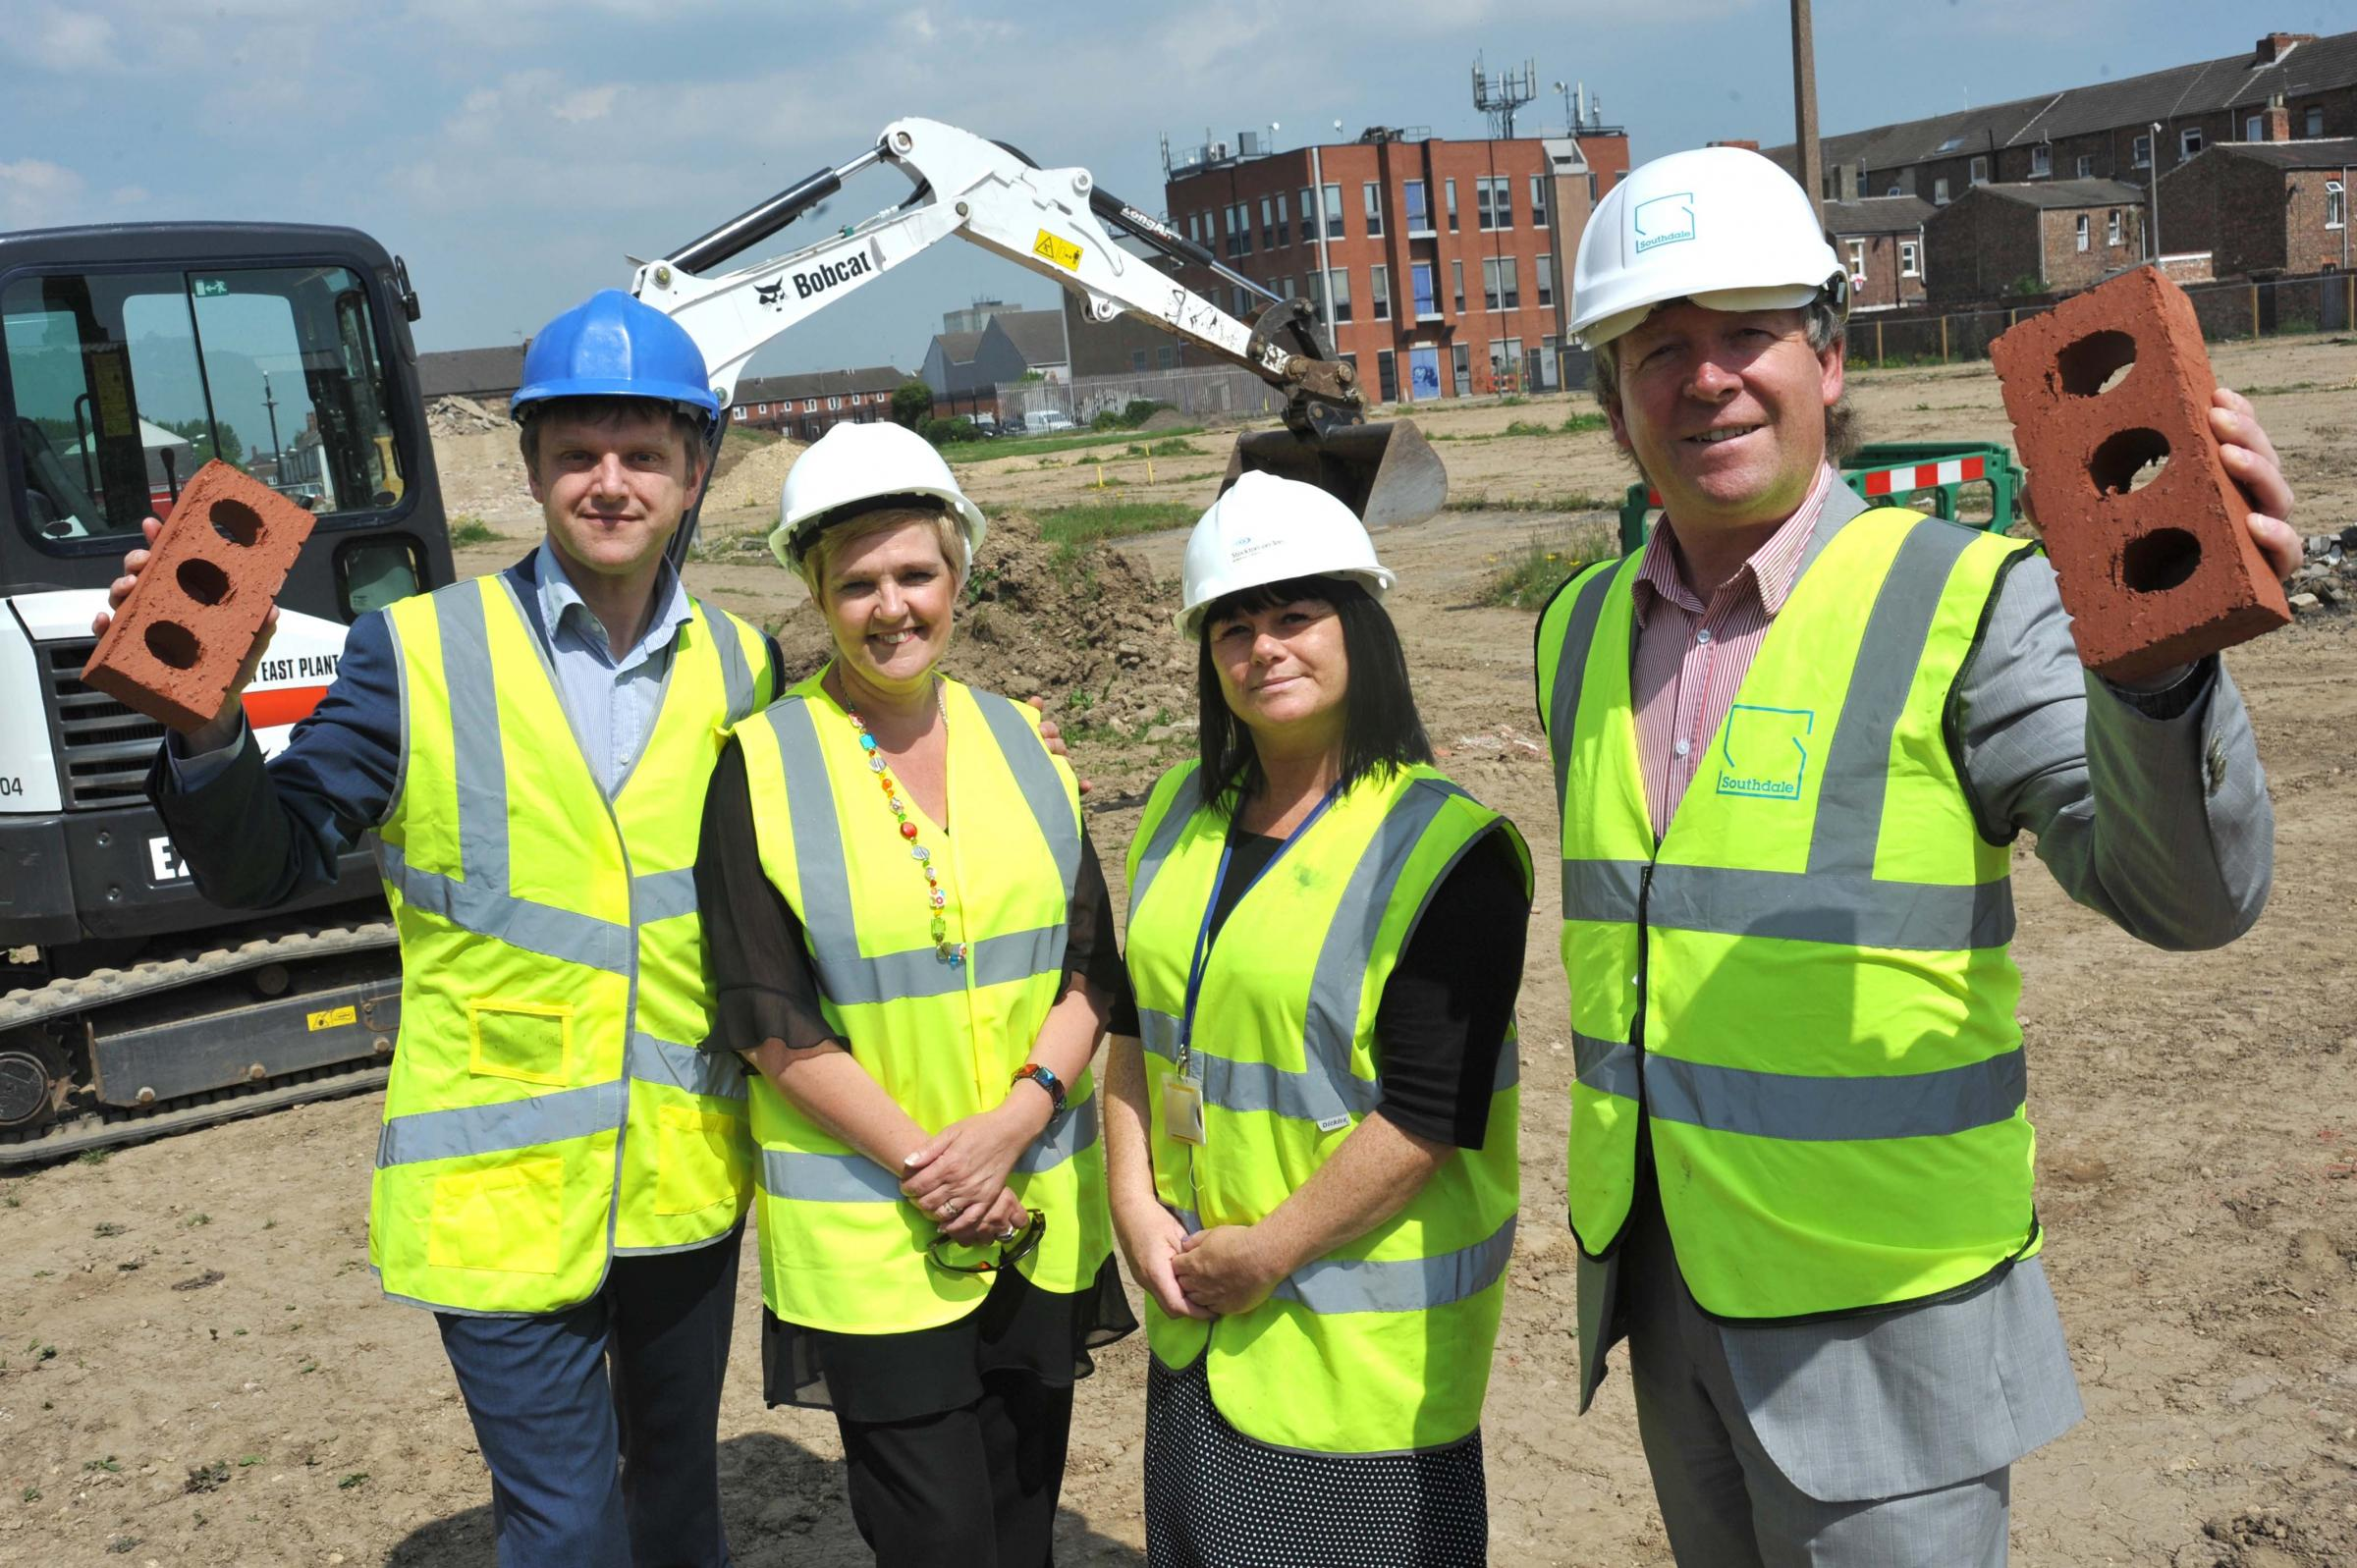 Housing development: (left to right) Martin Hawthorne from Thirteen Group, Julie Nixon from Stockton Council, Amanda Gallagher from Stockton Council and Steve Howard from Southdale.